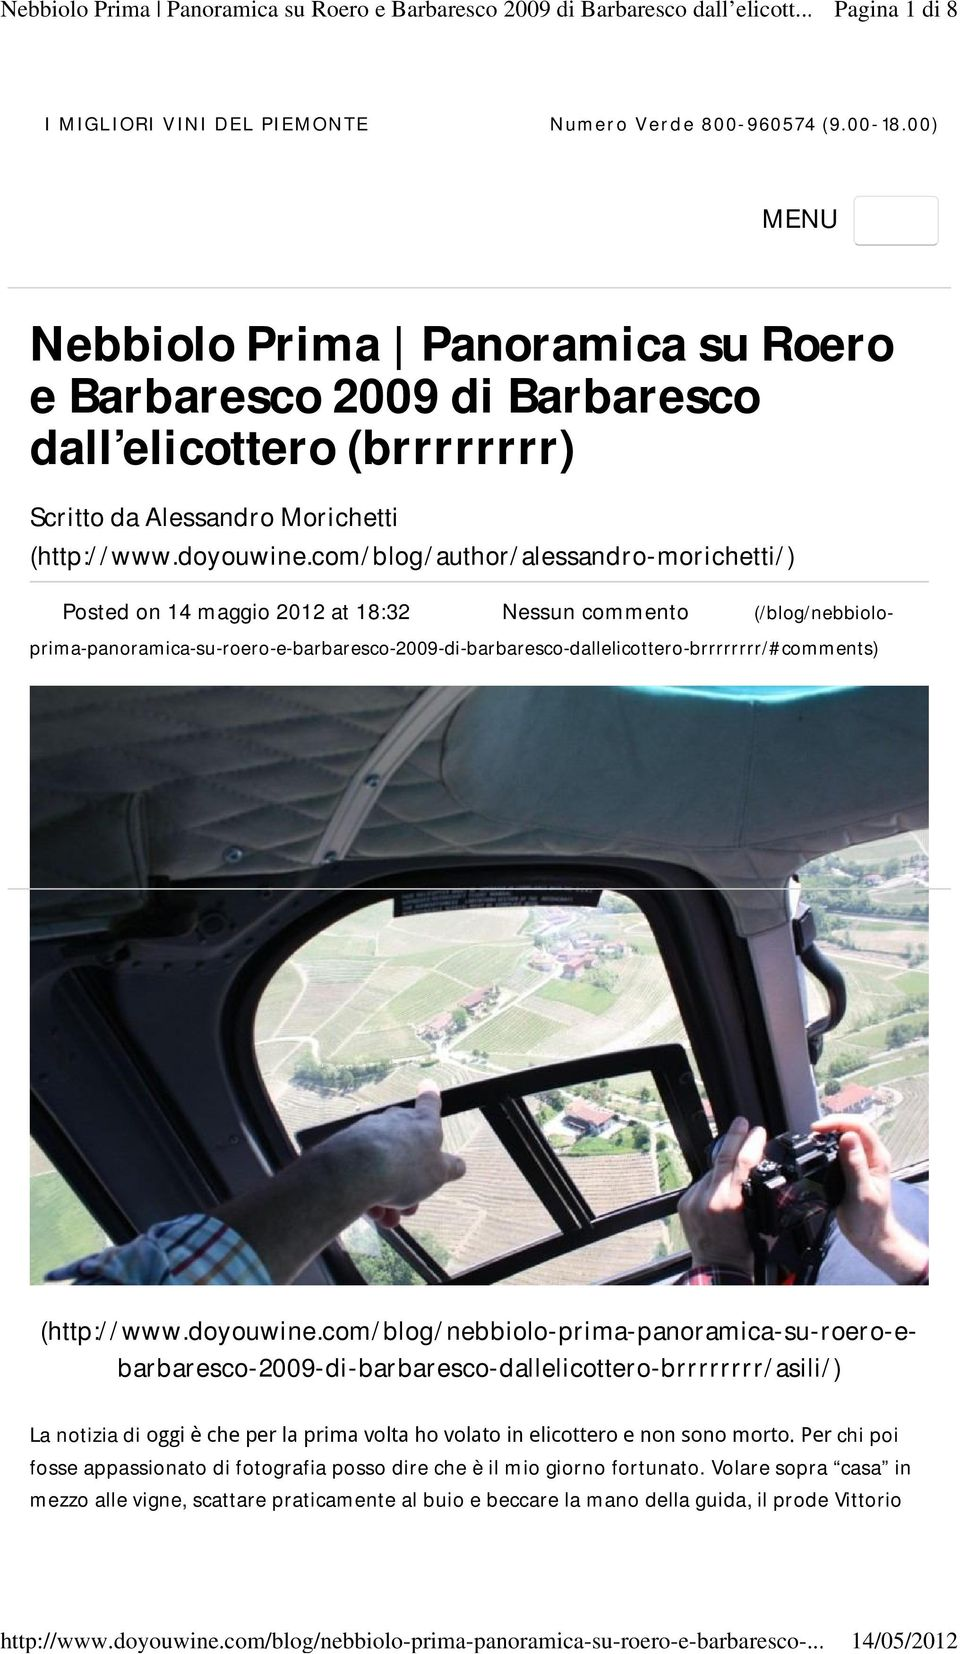 com/blog/author/alessandro-morichetti/) Posted on 14 maggio 2012 at 18:32 Nessun commento (http://www.doyouwine.